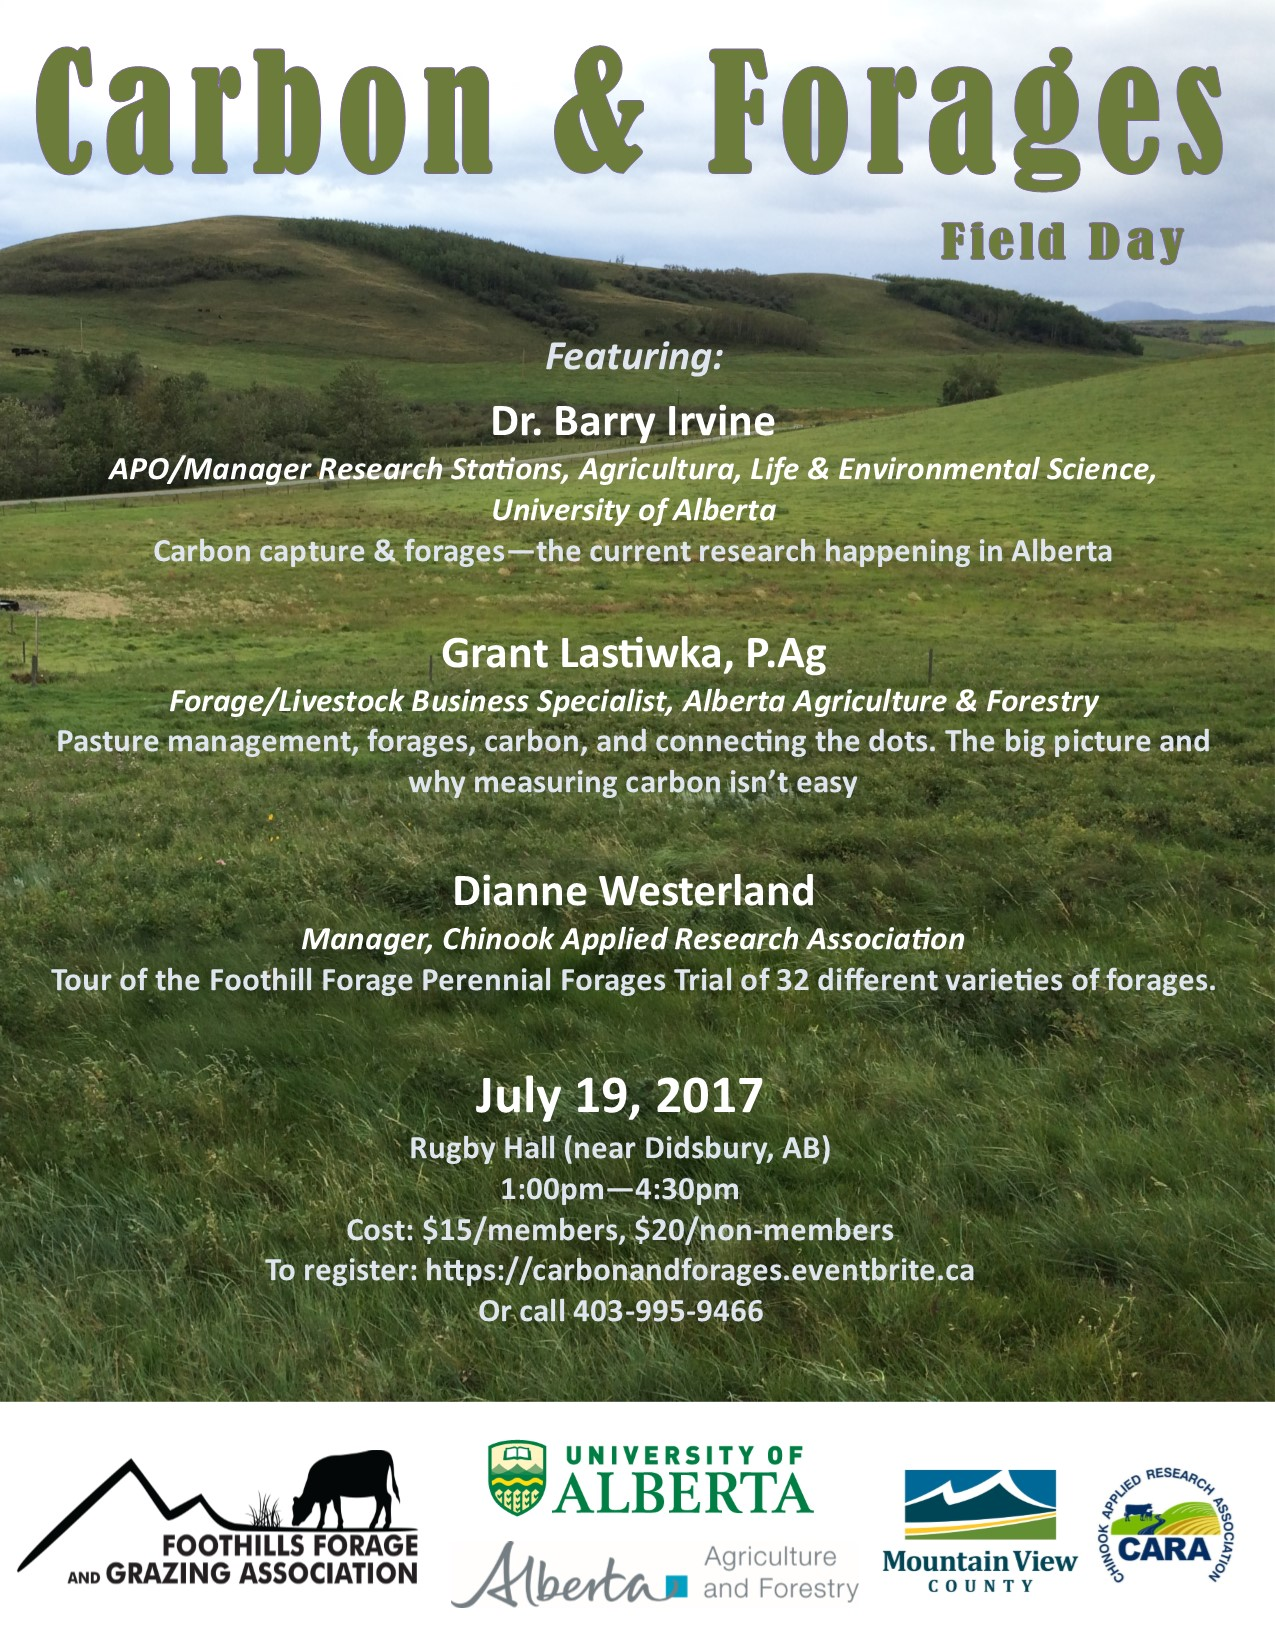 Carbon & Forages Event Poster